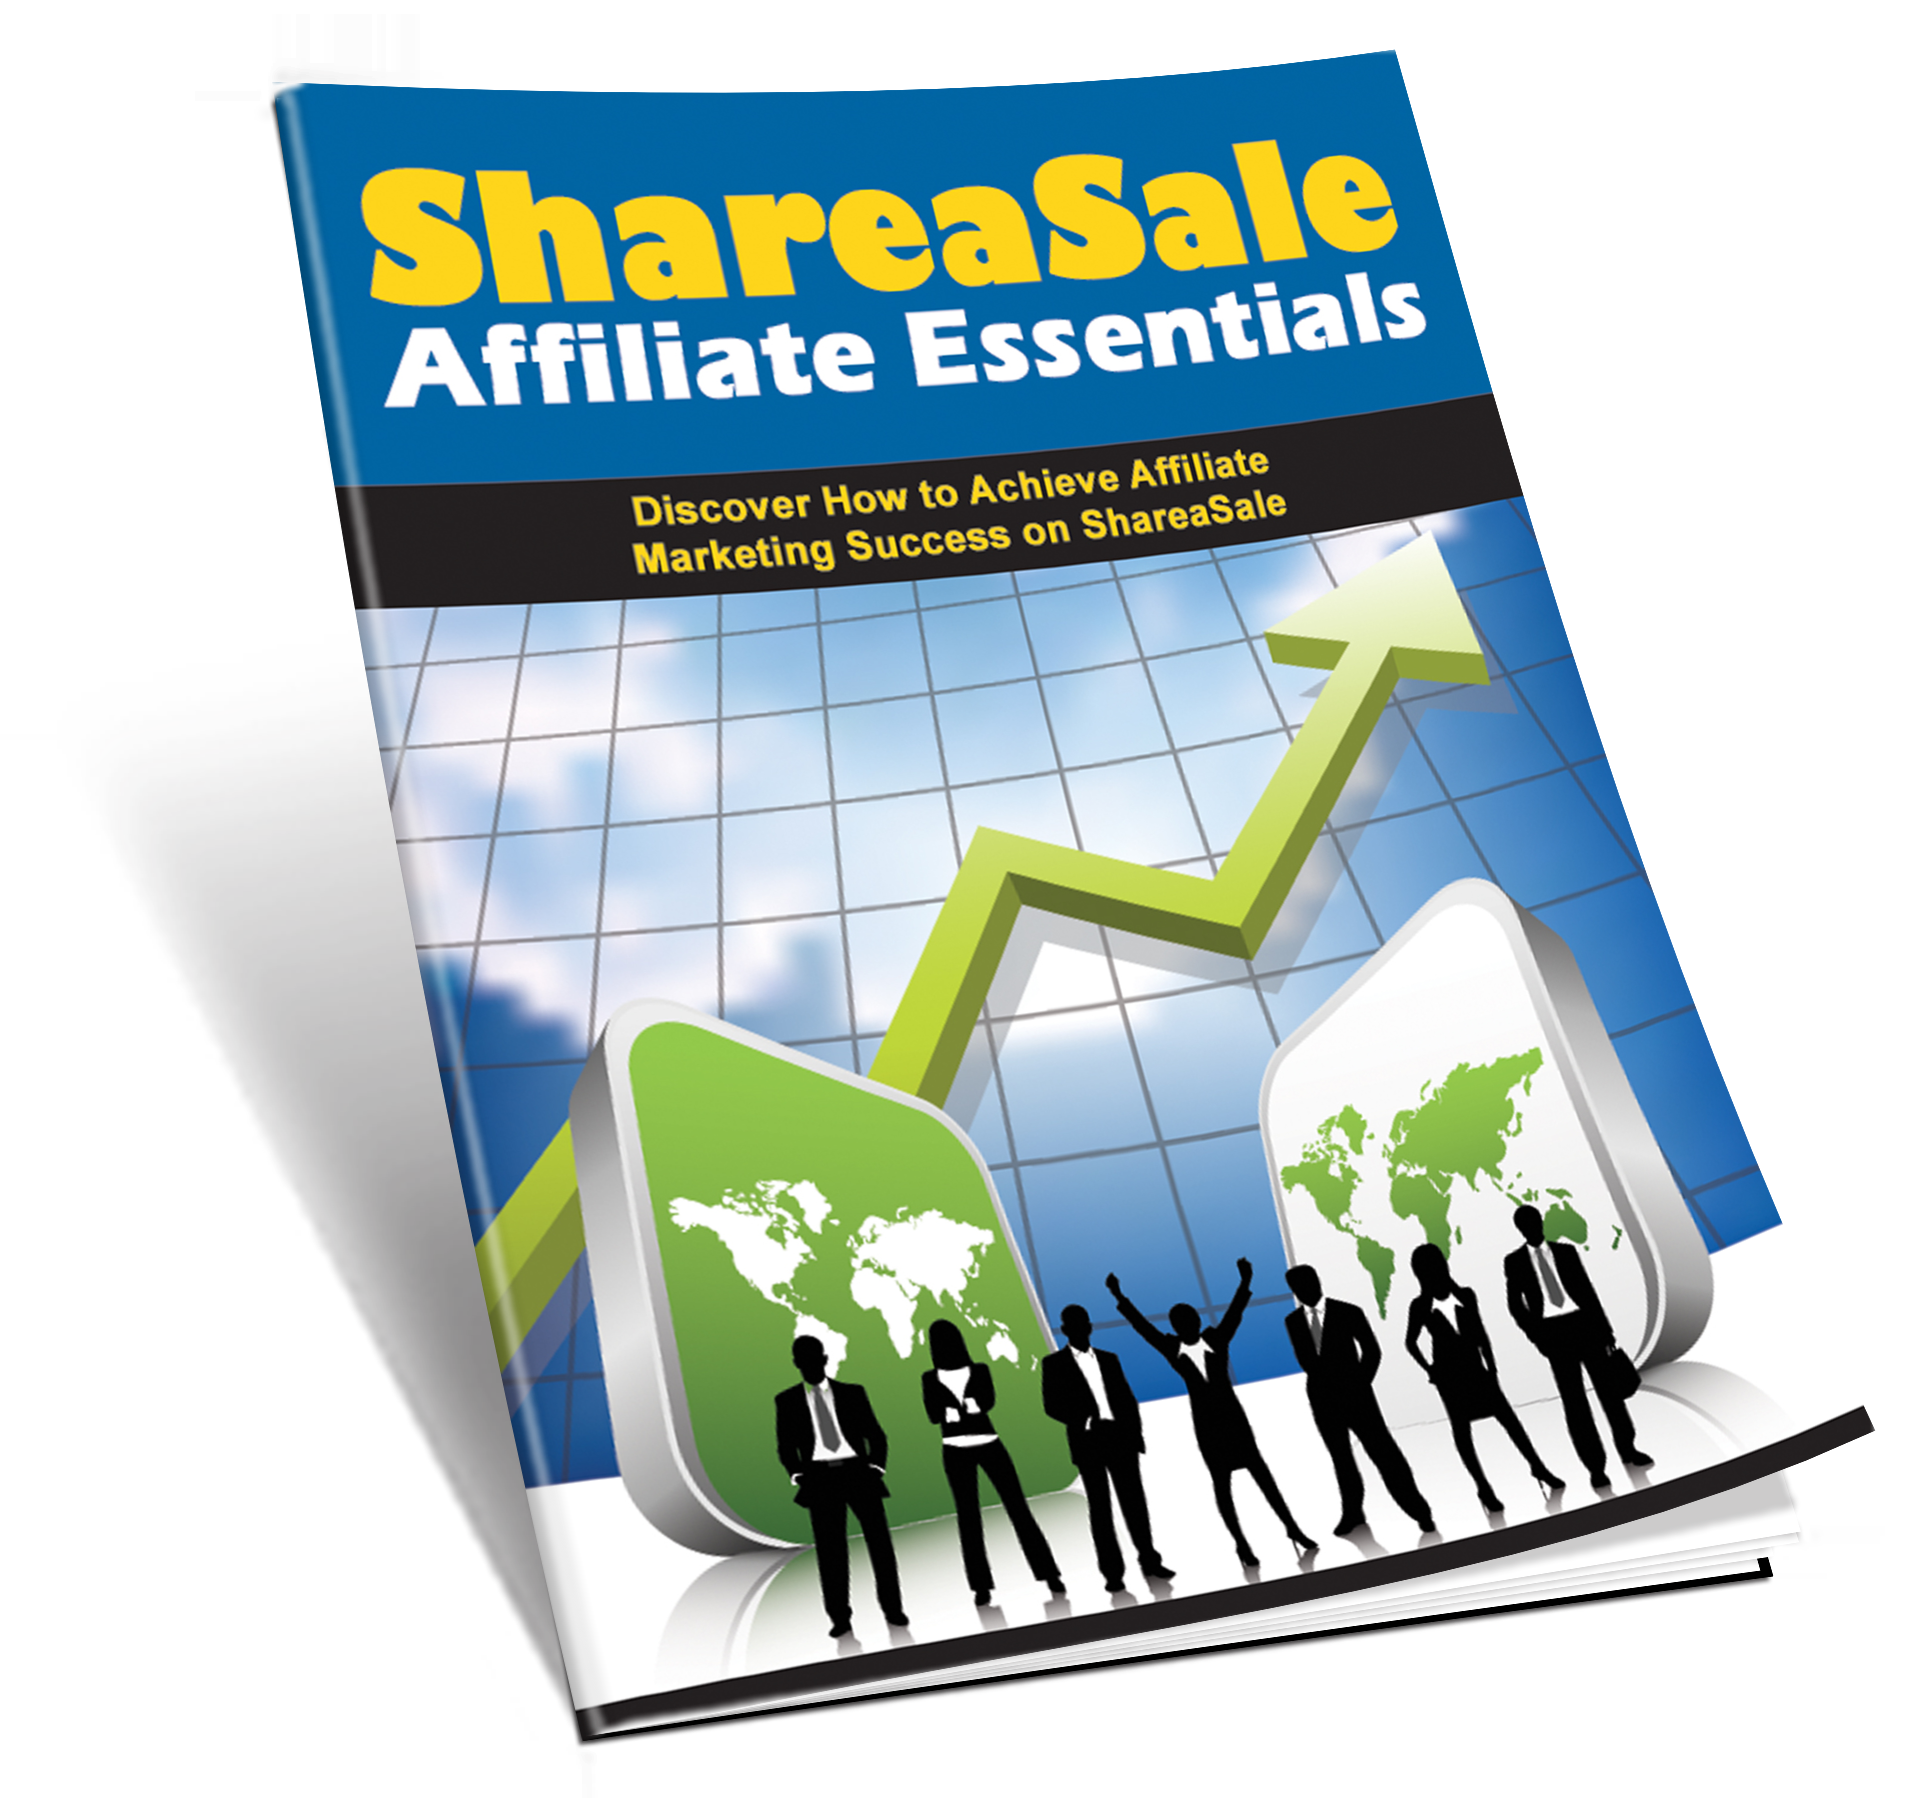 Shareasale Marketing Essentials